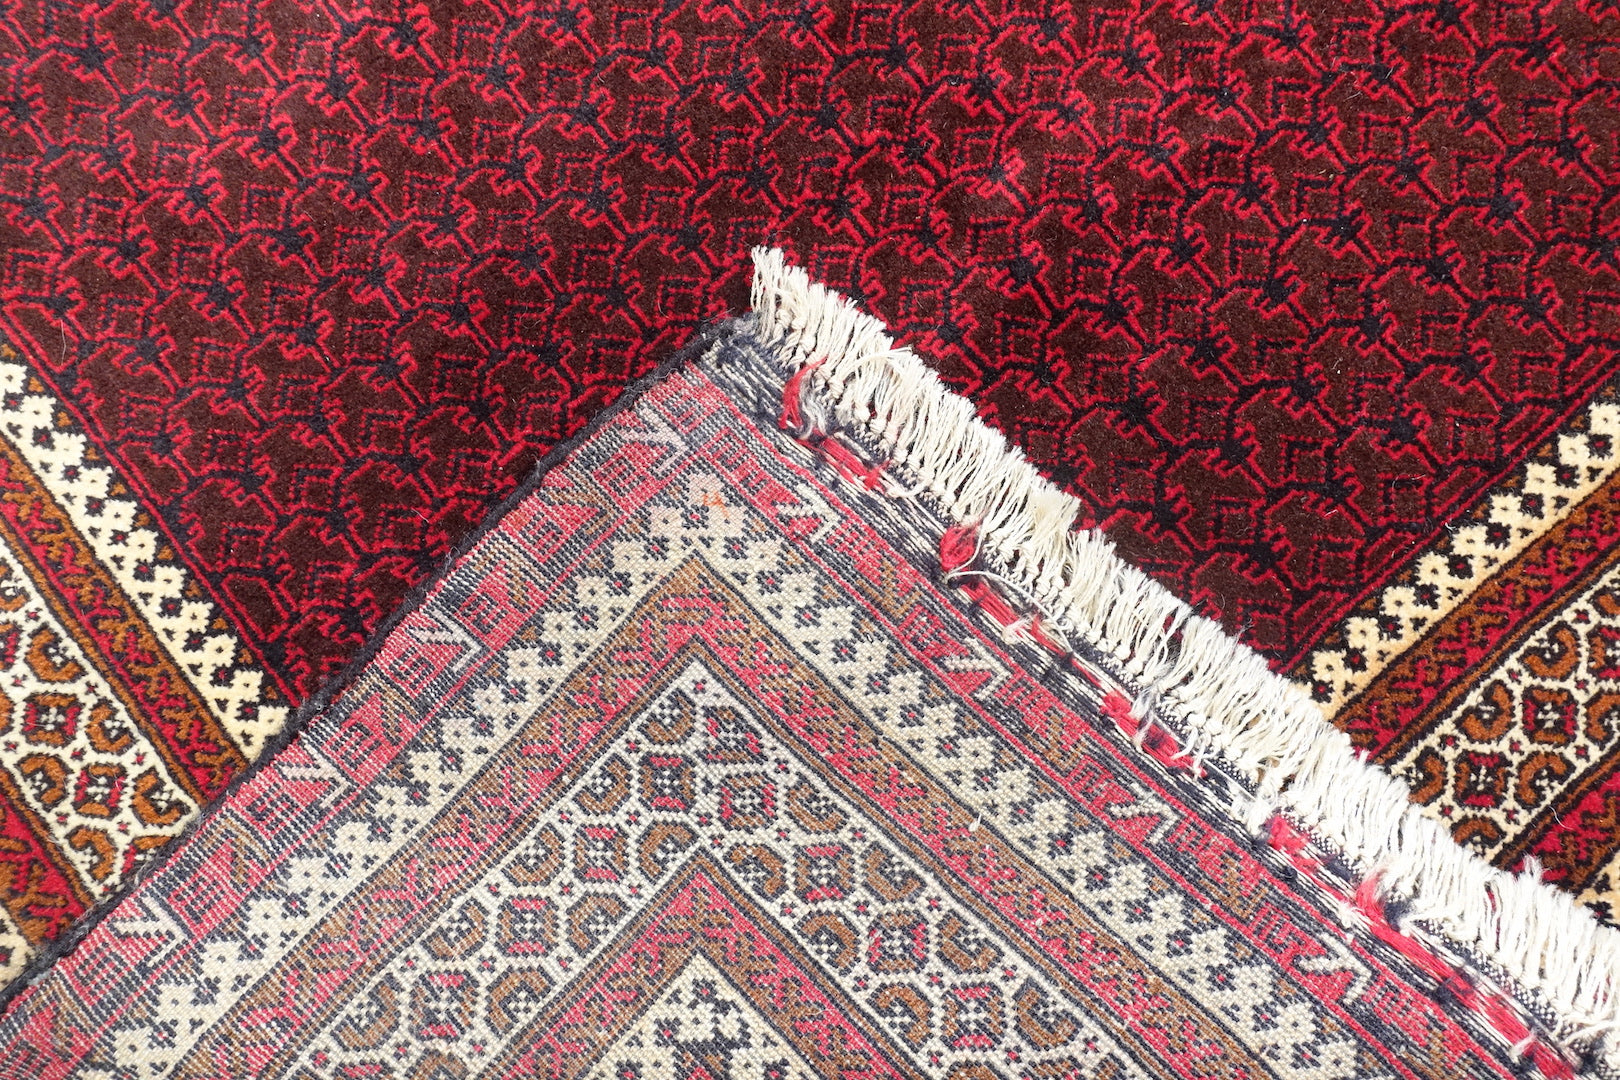 It is an Afghan wool rug that measures 3 feet 9 inches by 6 feet 4 inches. The colours used on the rug are red,beige and rust.